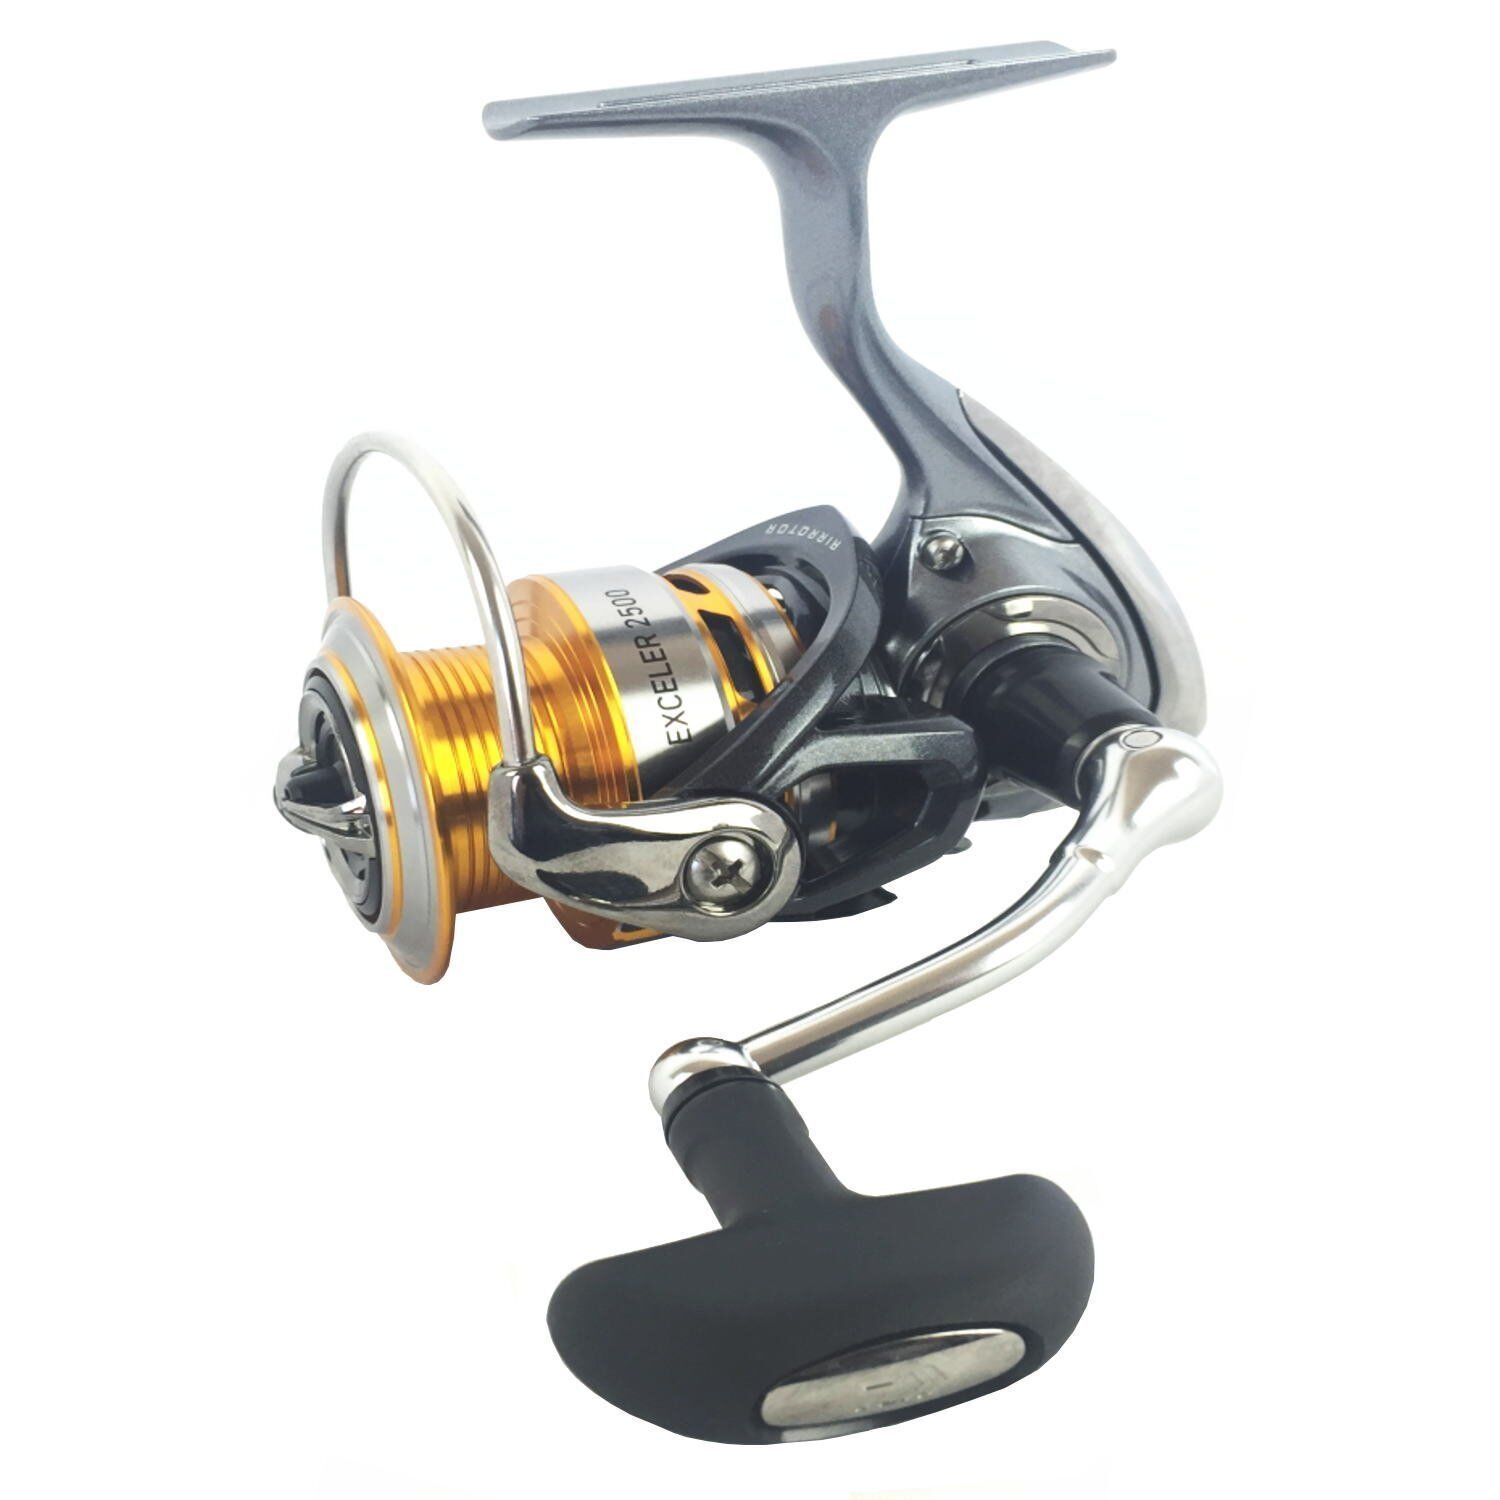 Daiwa 17 EXCELER 2500 Spininng Reel Reel Spininng MAGSEALD New 7334dd